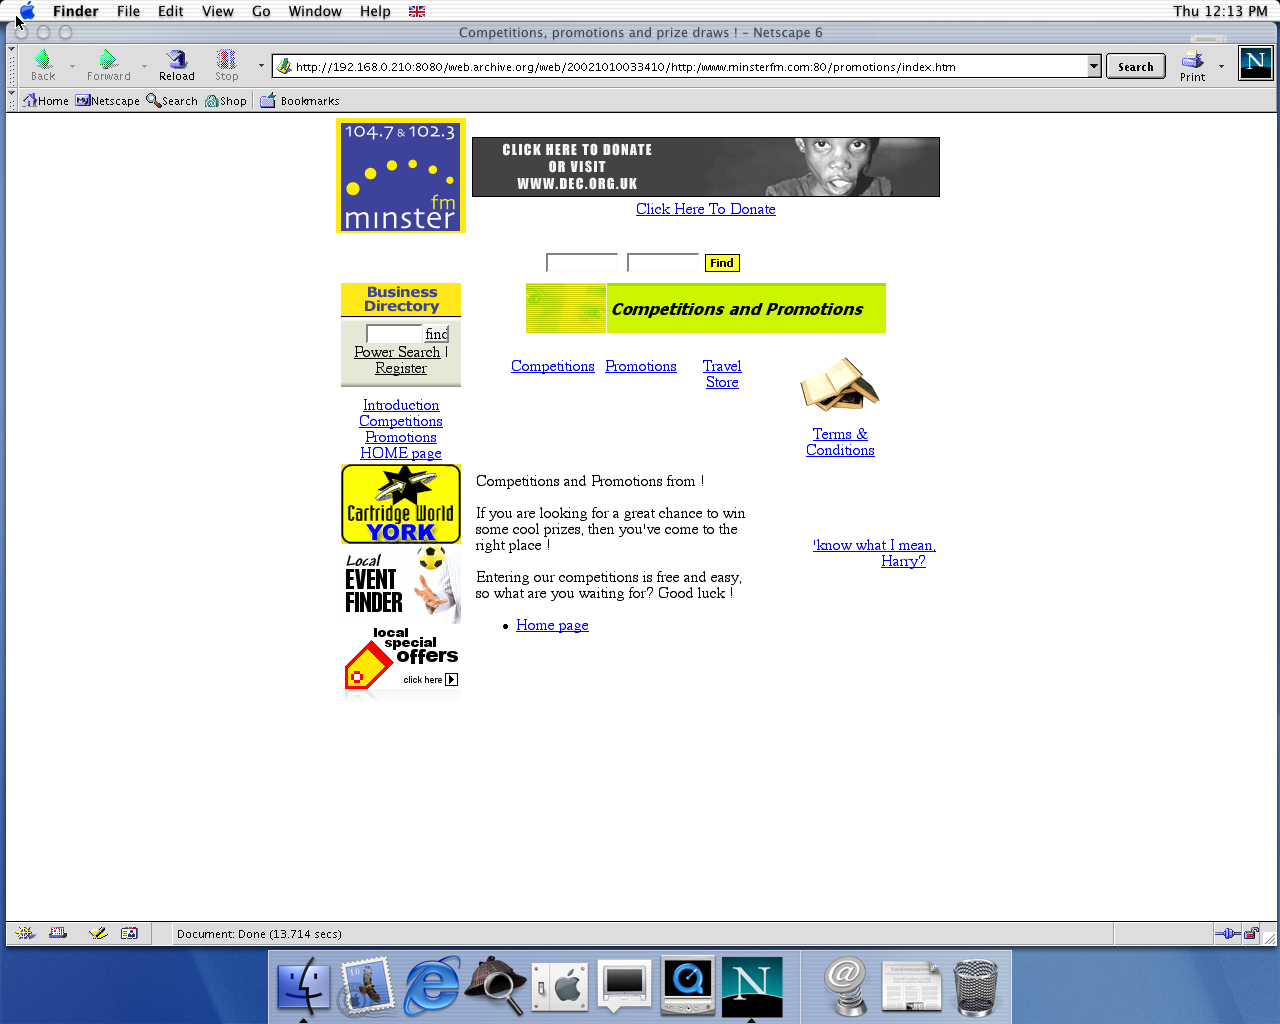 OS X 10.0 PPC with Netscape 6.1 displaying a page from Minster FM archived at October 10, 2002 at 03:34:10